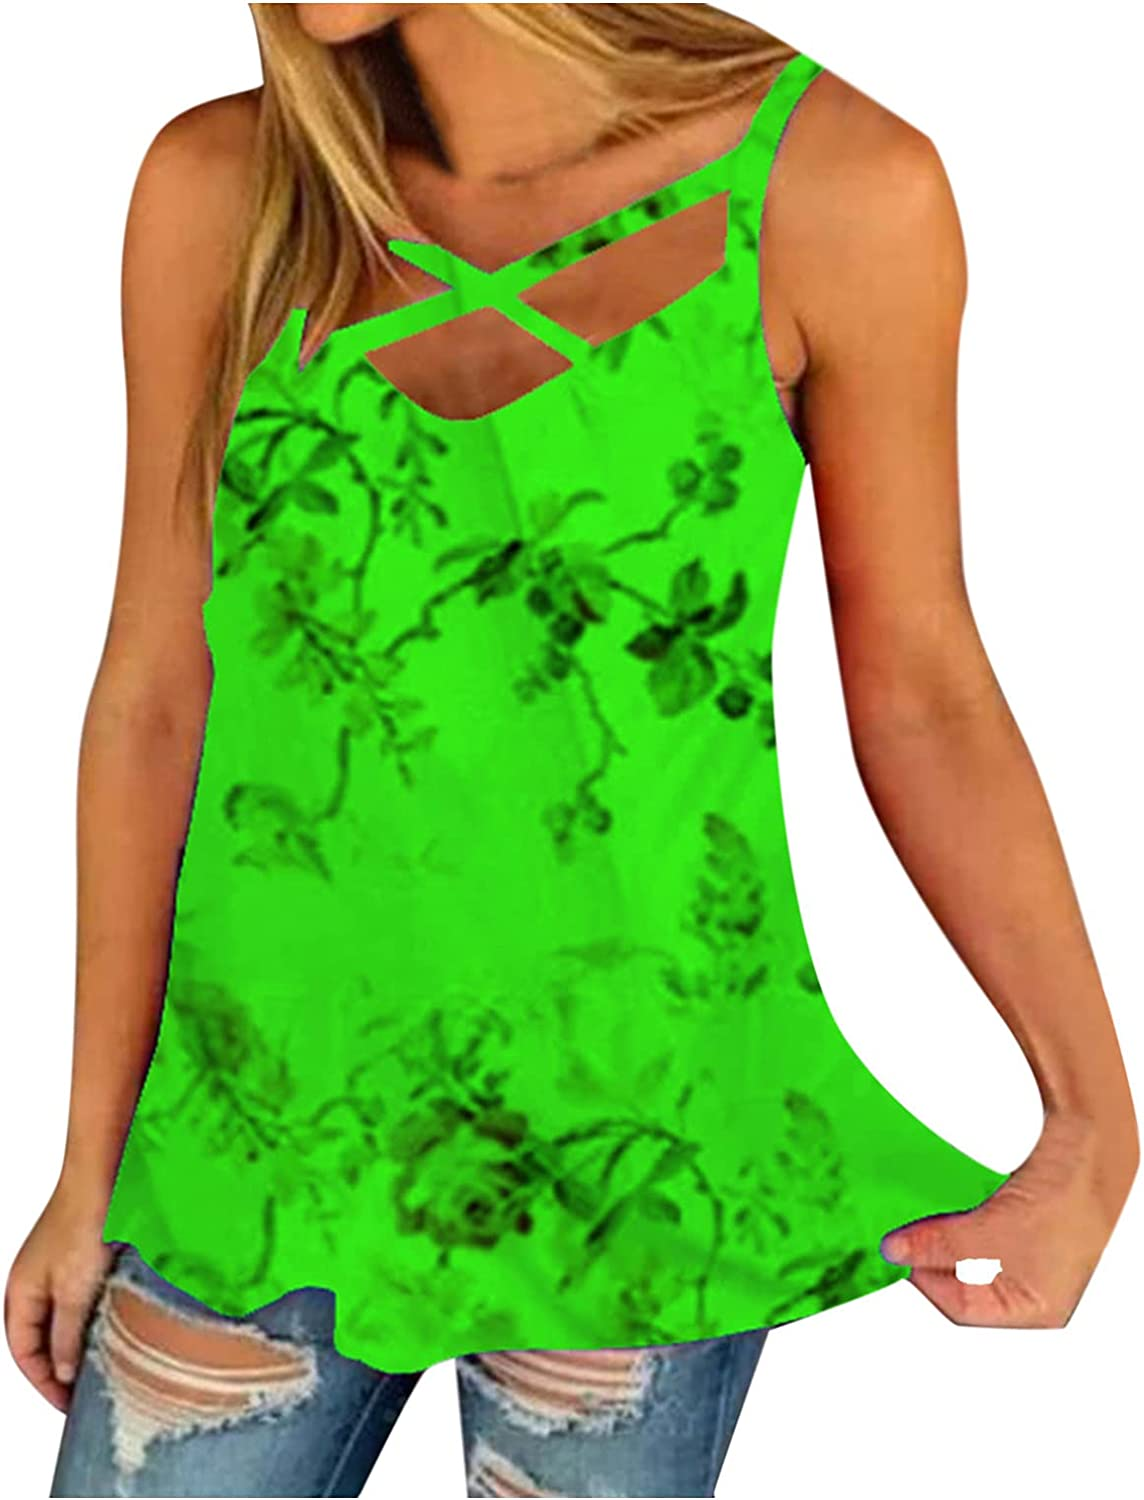 USYFAKGH 丨vest for Women casual丨Prints Fake Two Piece Sleeveless Tops Summer Casual Loose Tee Shirts